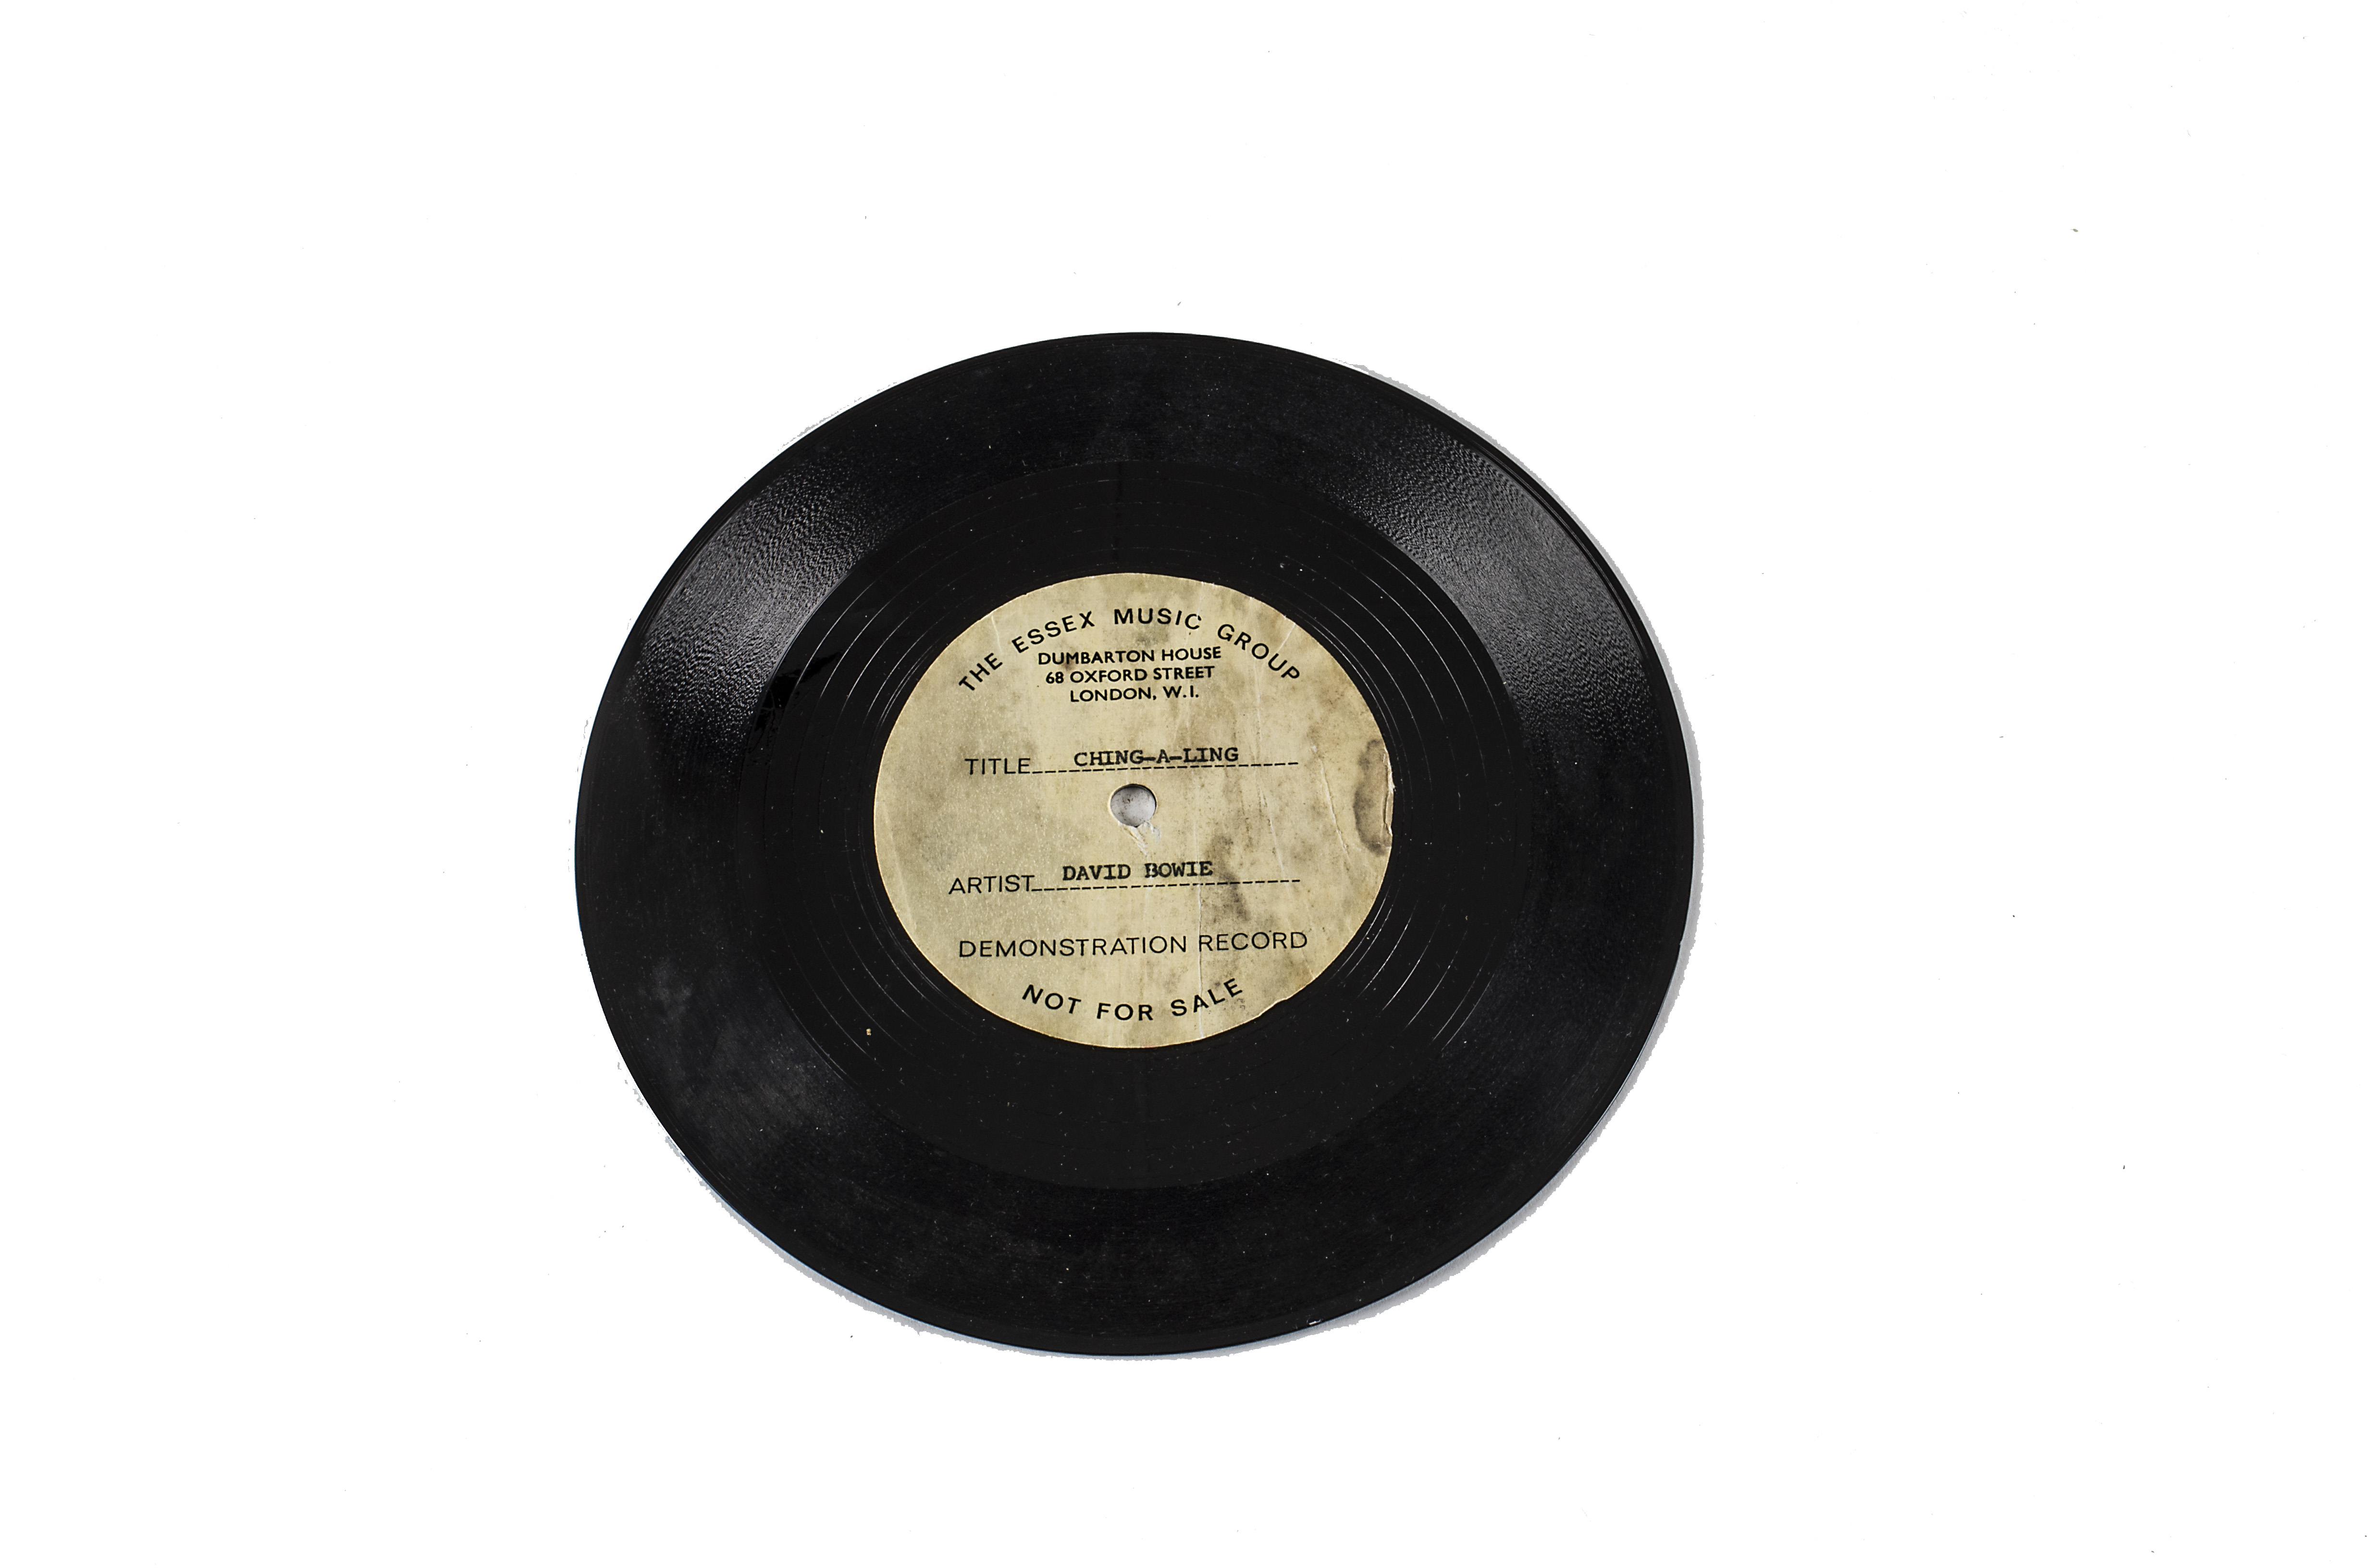 """Lot 228 - David Bowie Acetate, Ching-A-Ling - One-Sided UK 7"""" Acetate - In 1968 David Bowie formed a short"""